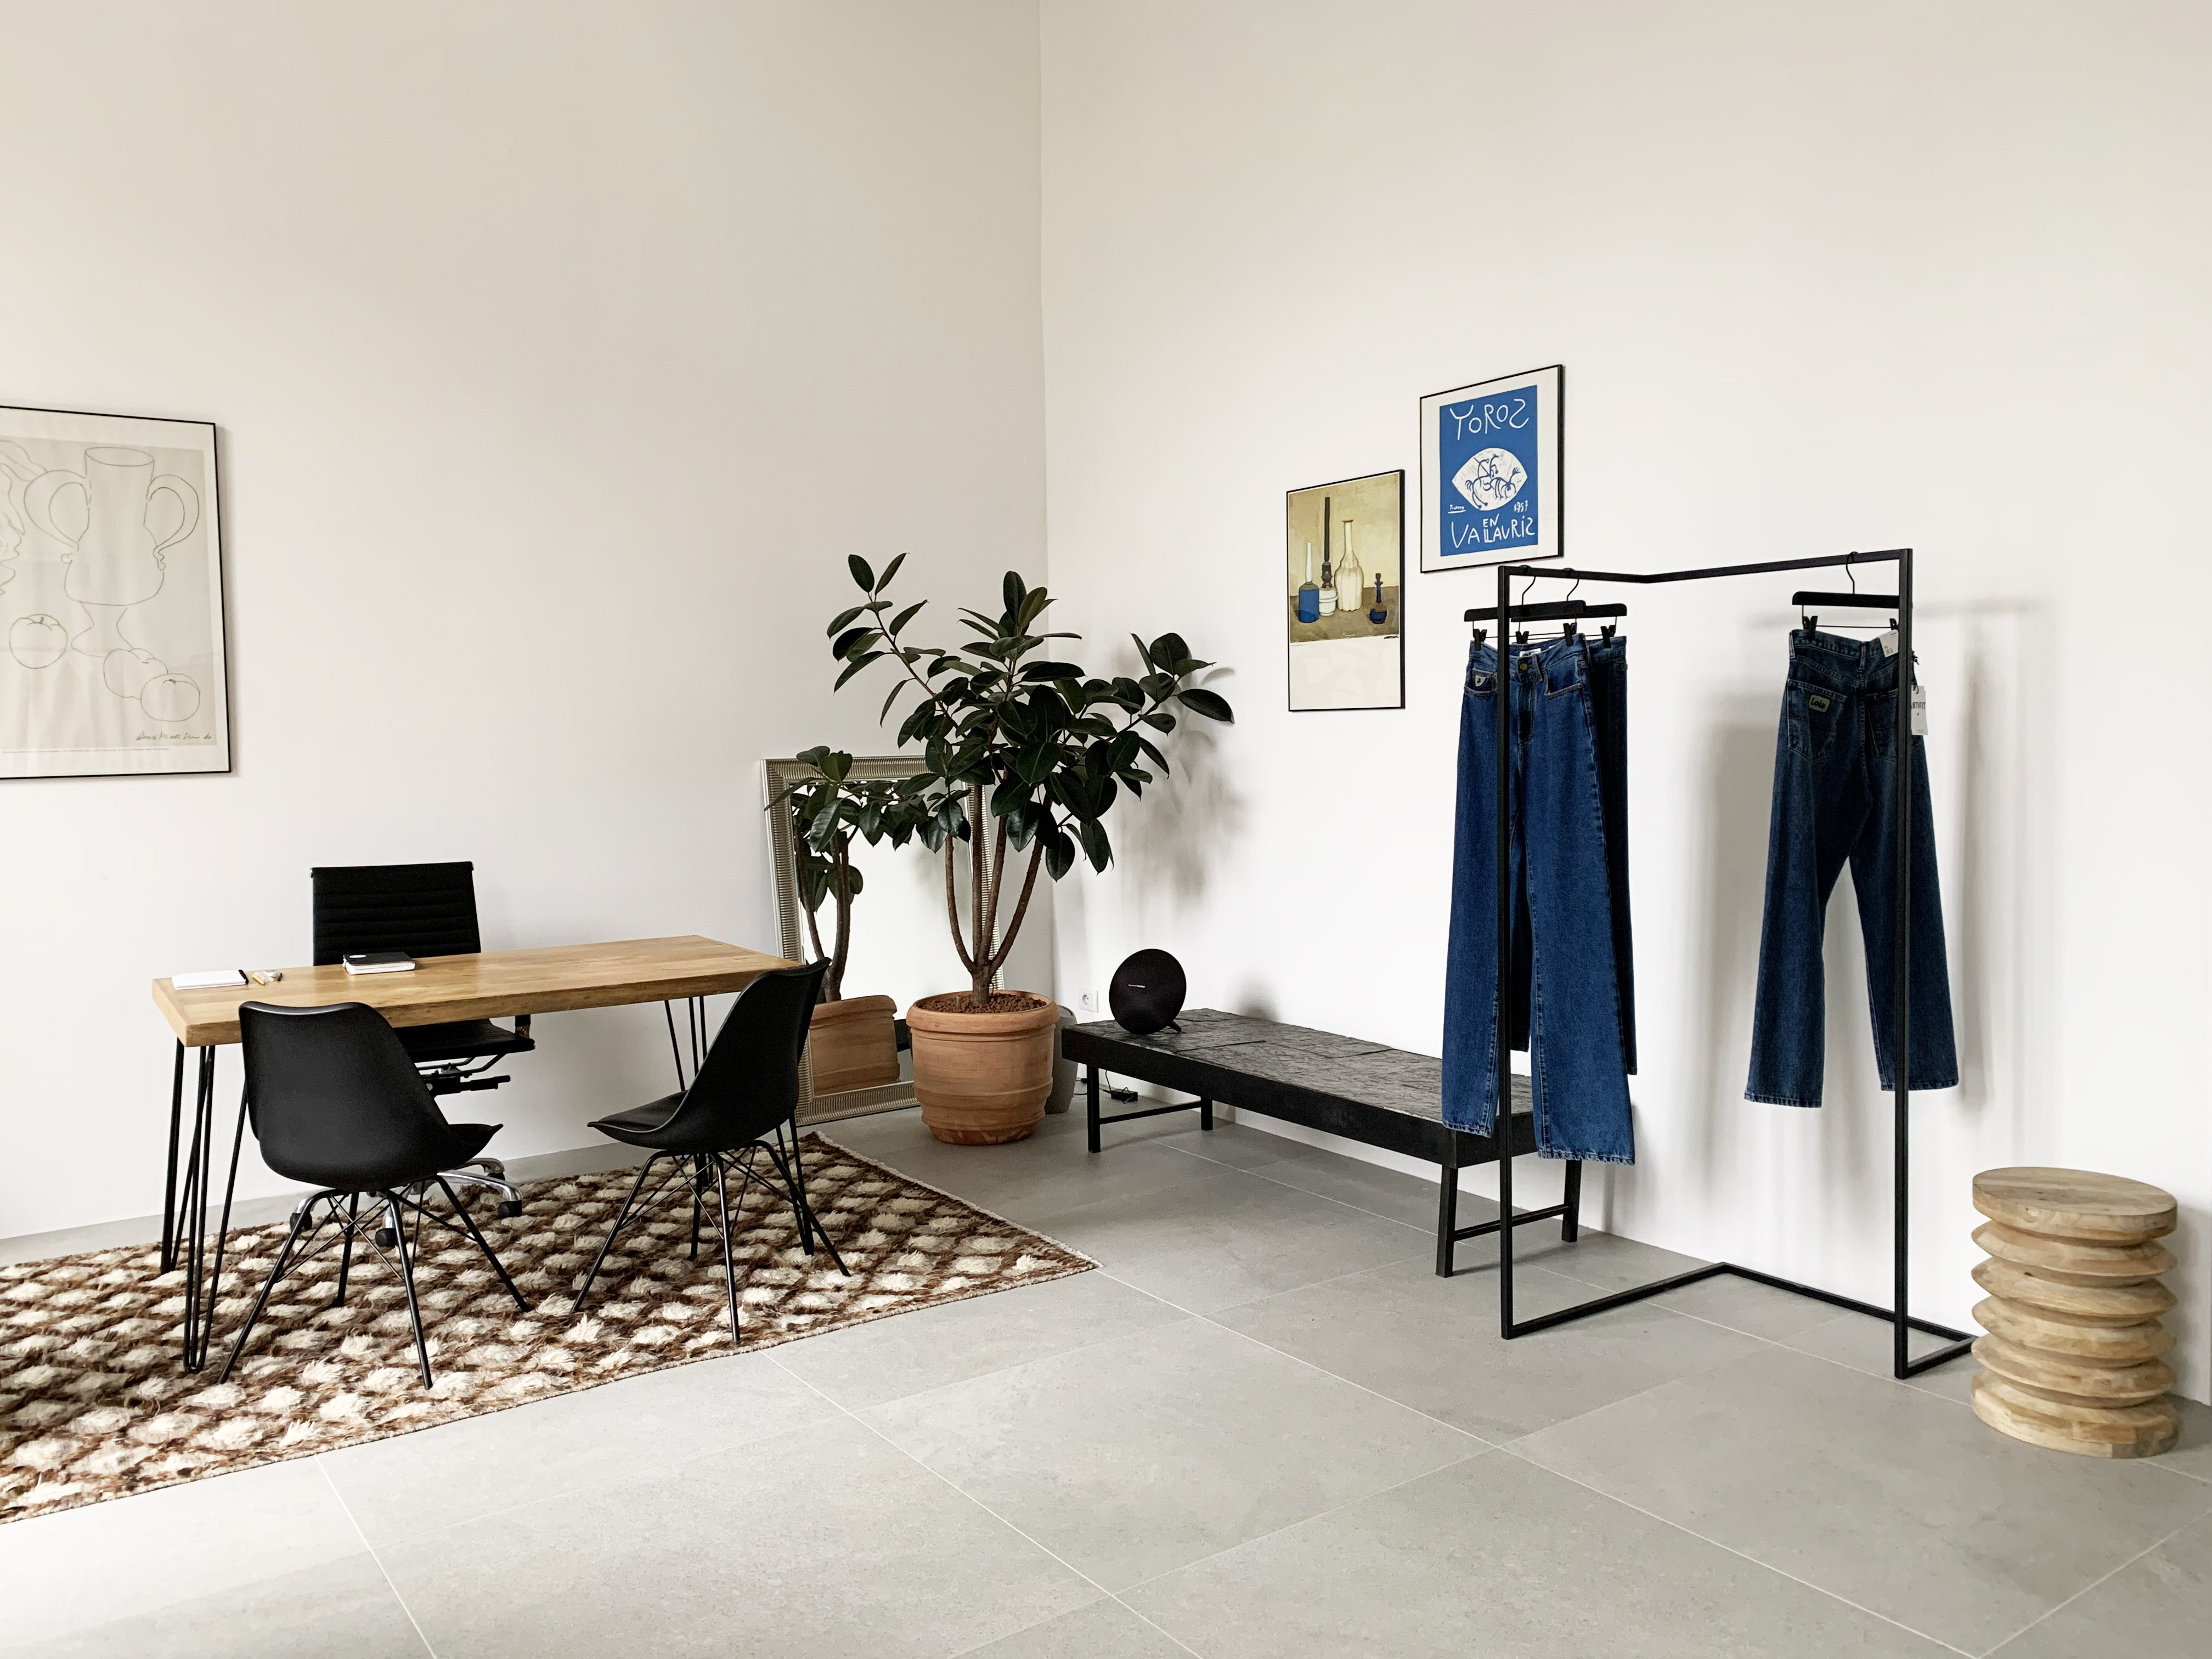 Lois Jeans - temporay showroom AI 21/22 in Via Tortona 31 - 3